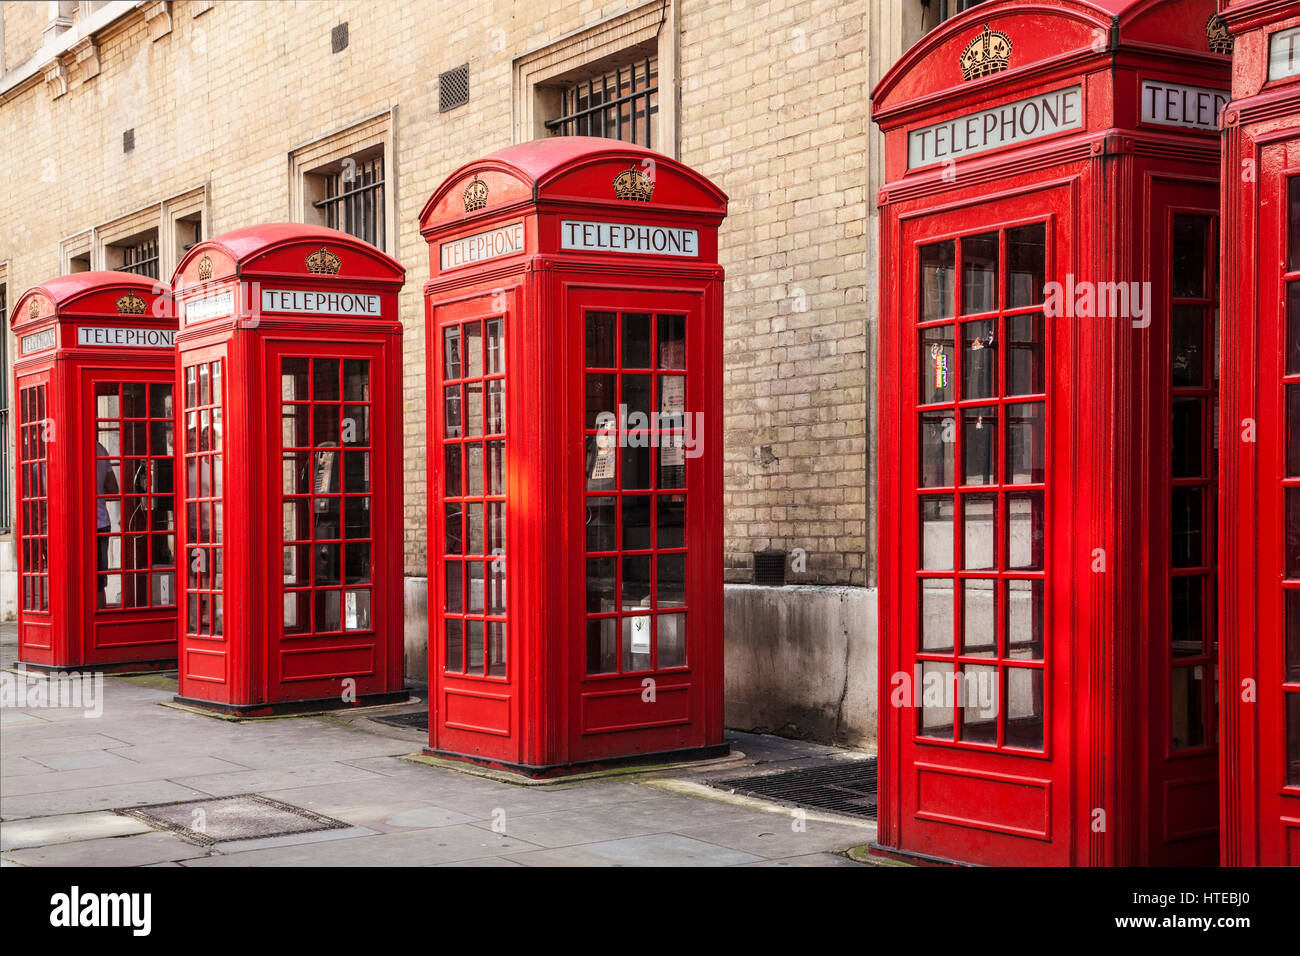 A row of red telephone boxes in London. - Stock Image